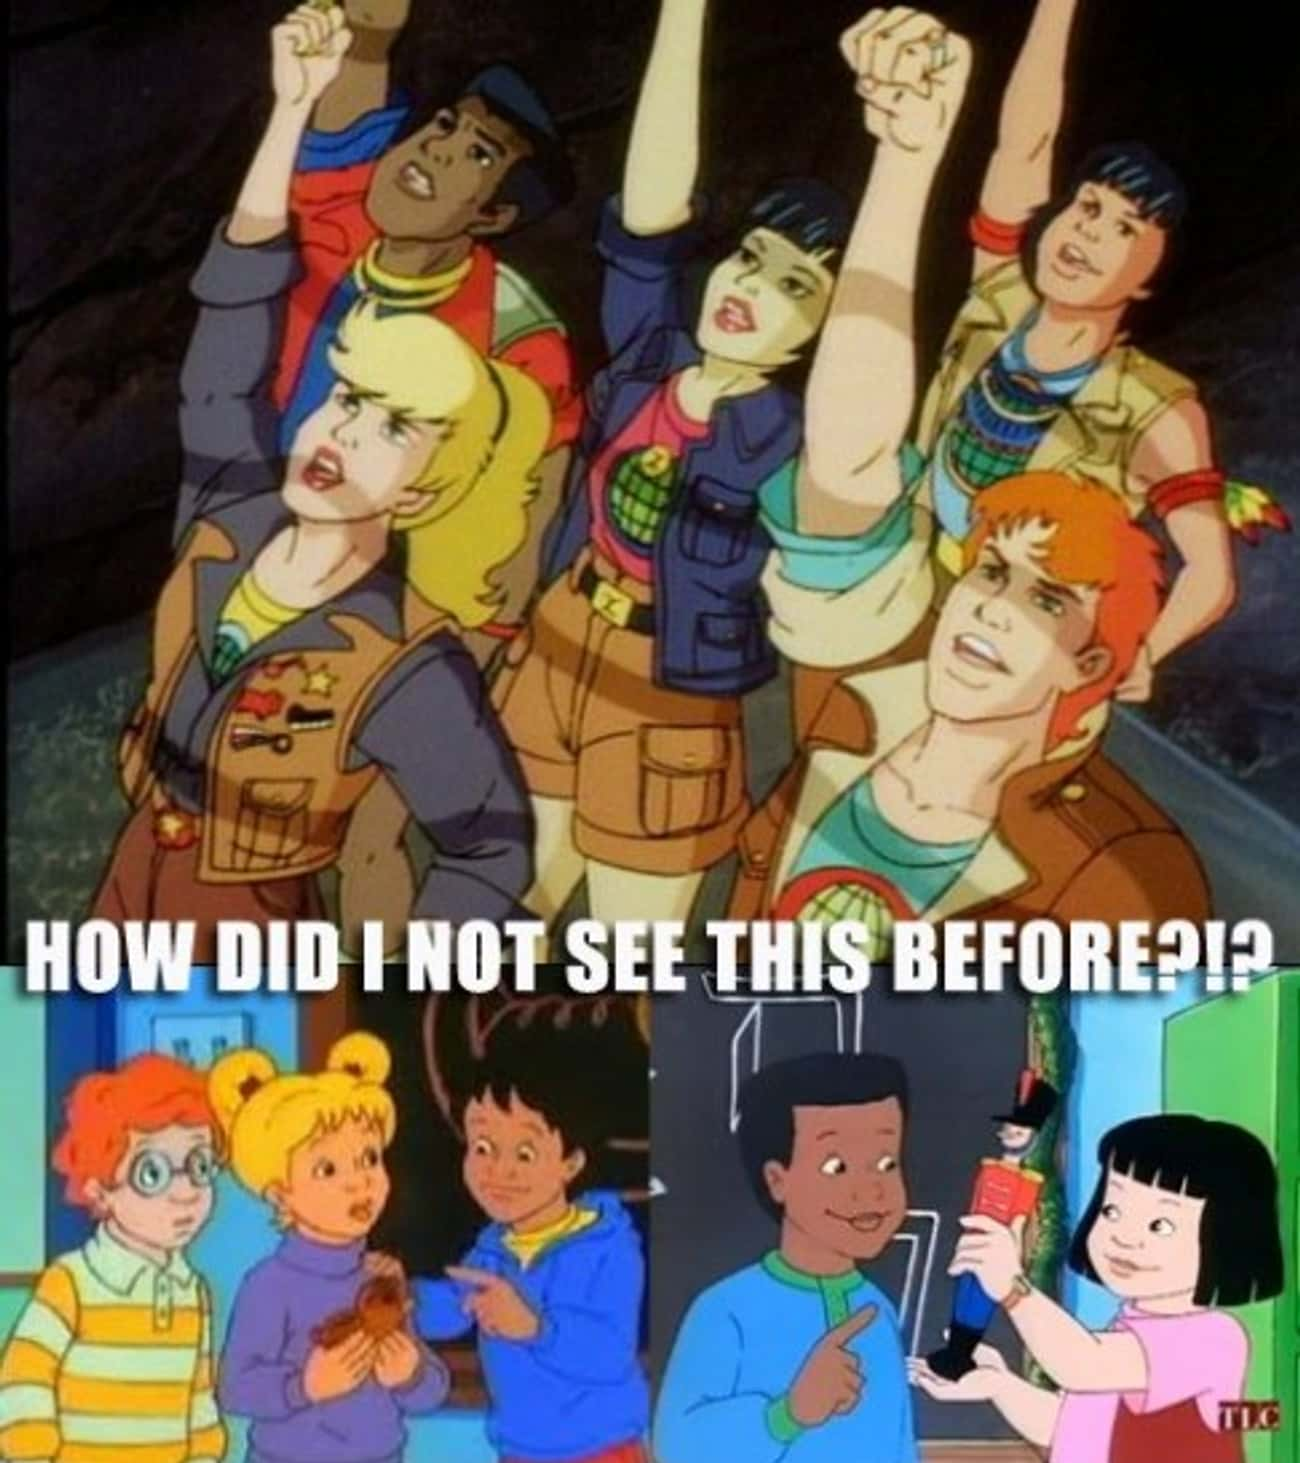 The Kids Grew Up To Become Captain Planet's Planeteers